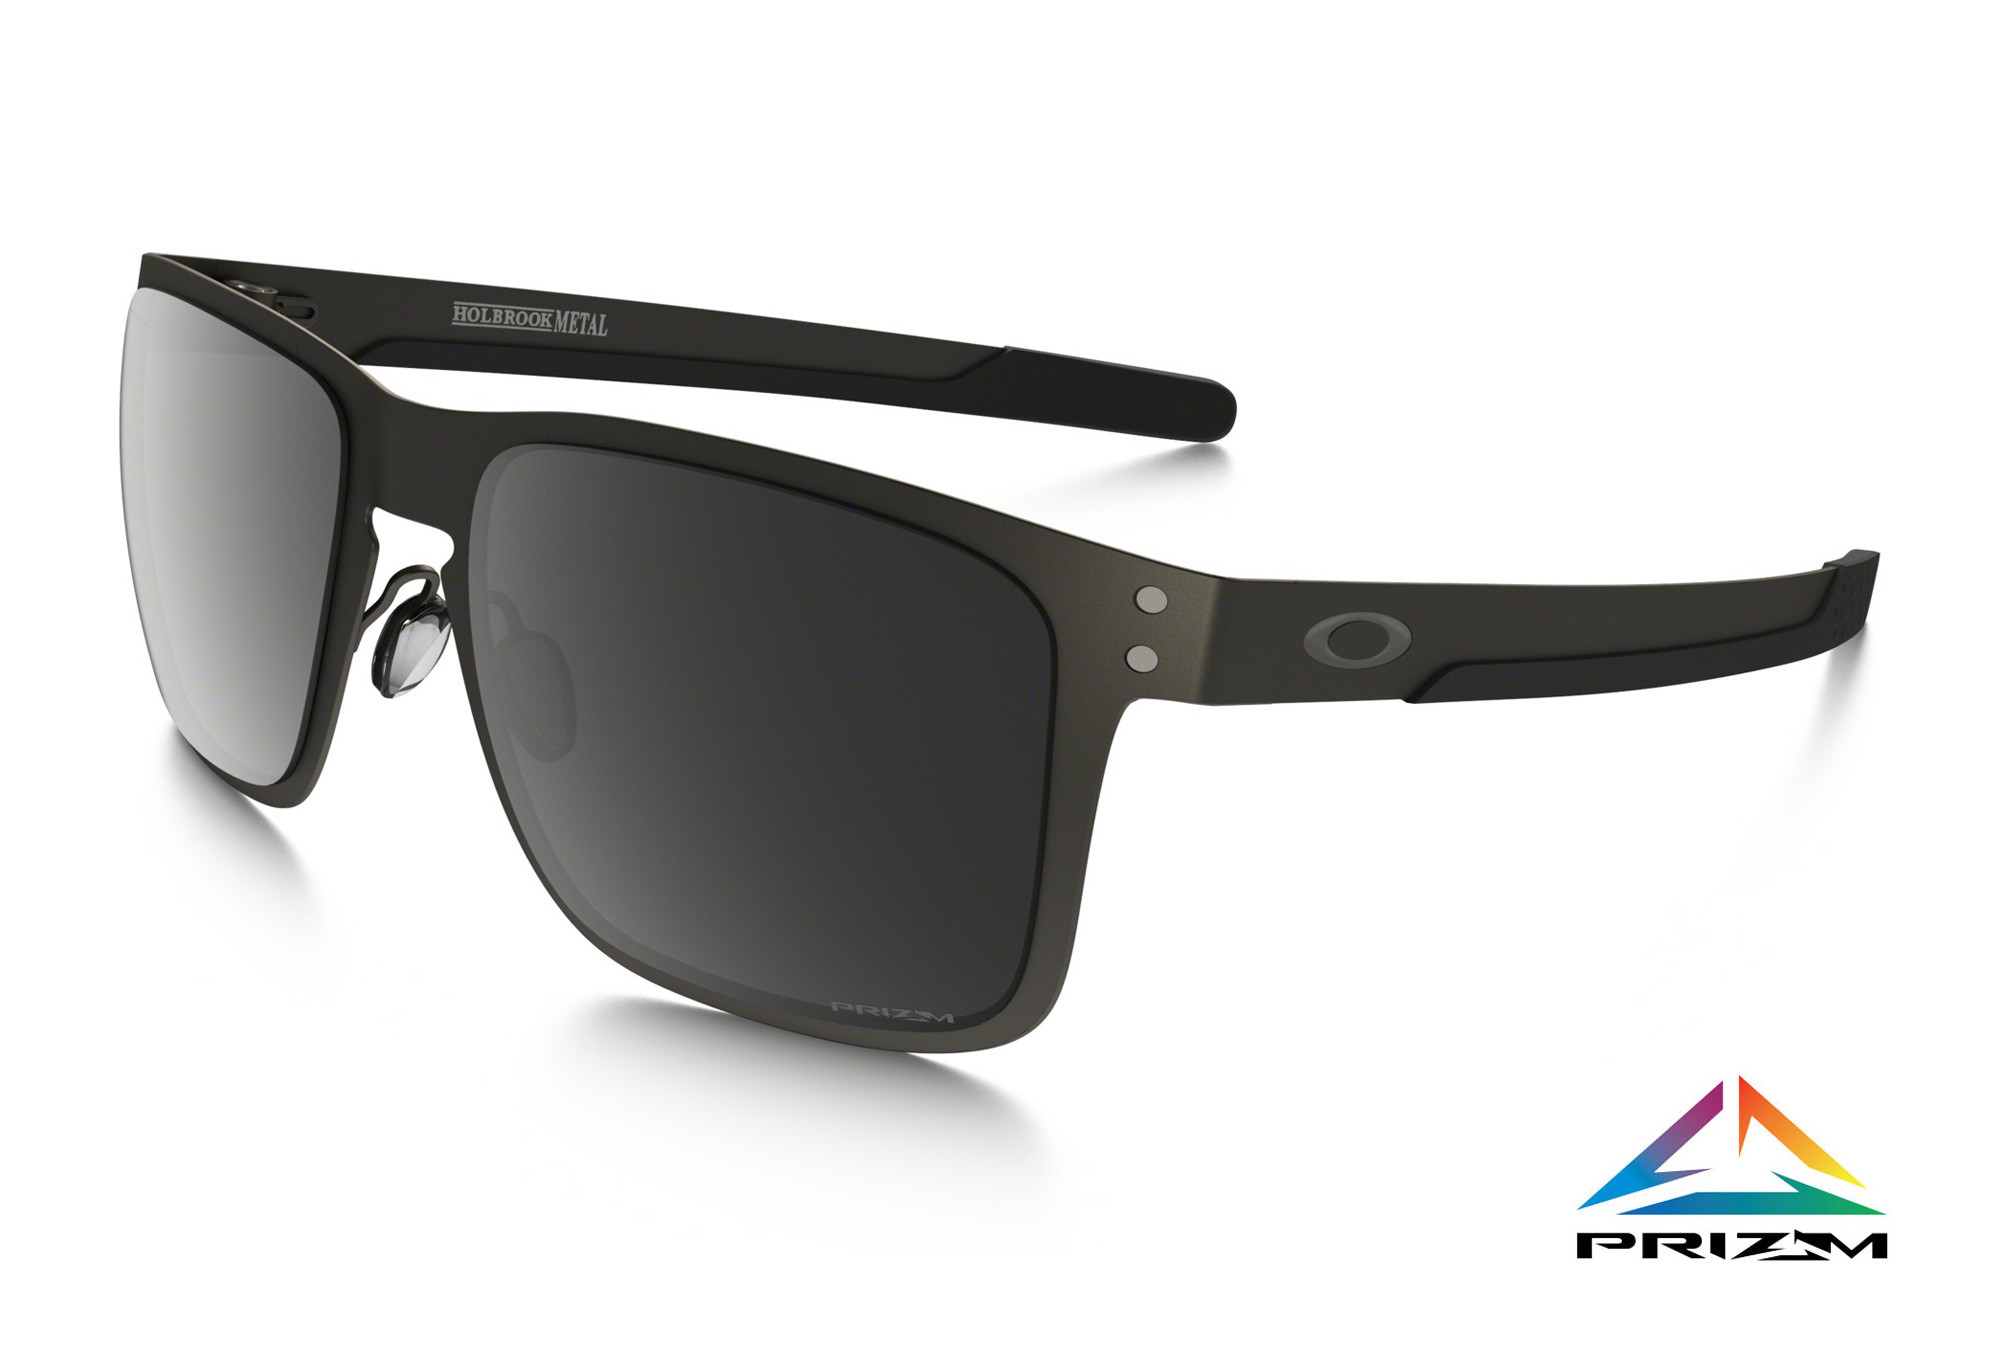 1d39d37115 ... where can i buy oakley sunglasses holbrook metal matte gunmetal prizm  black polarized ref oo4123 0655